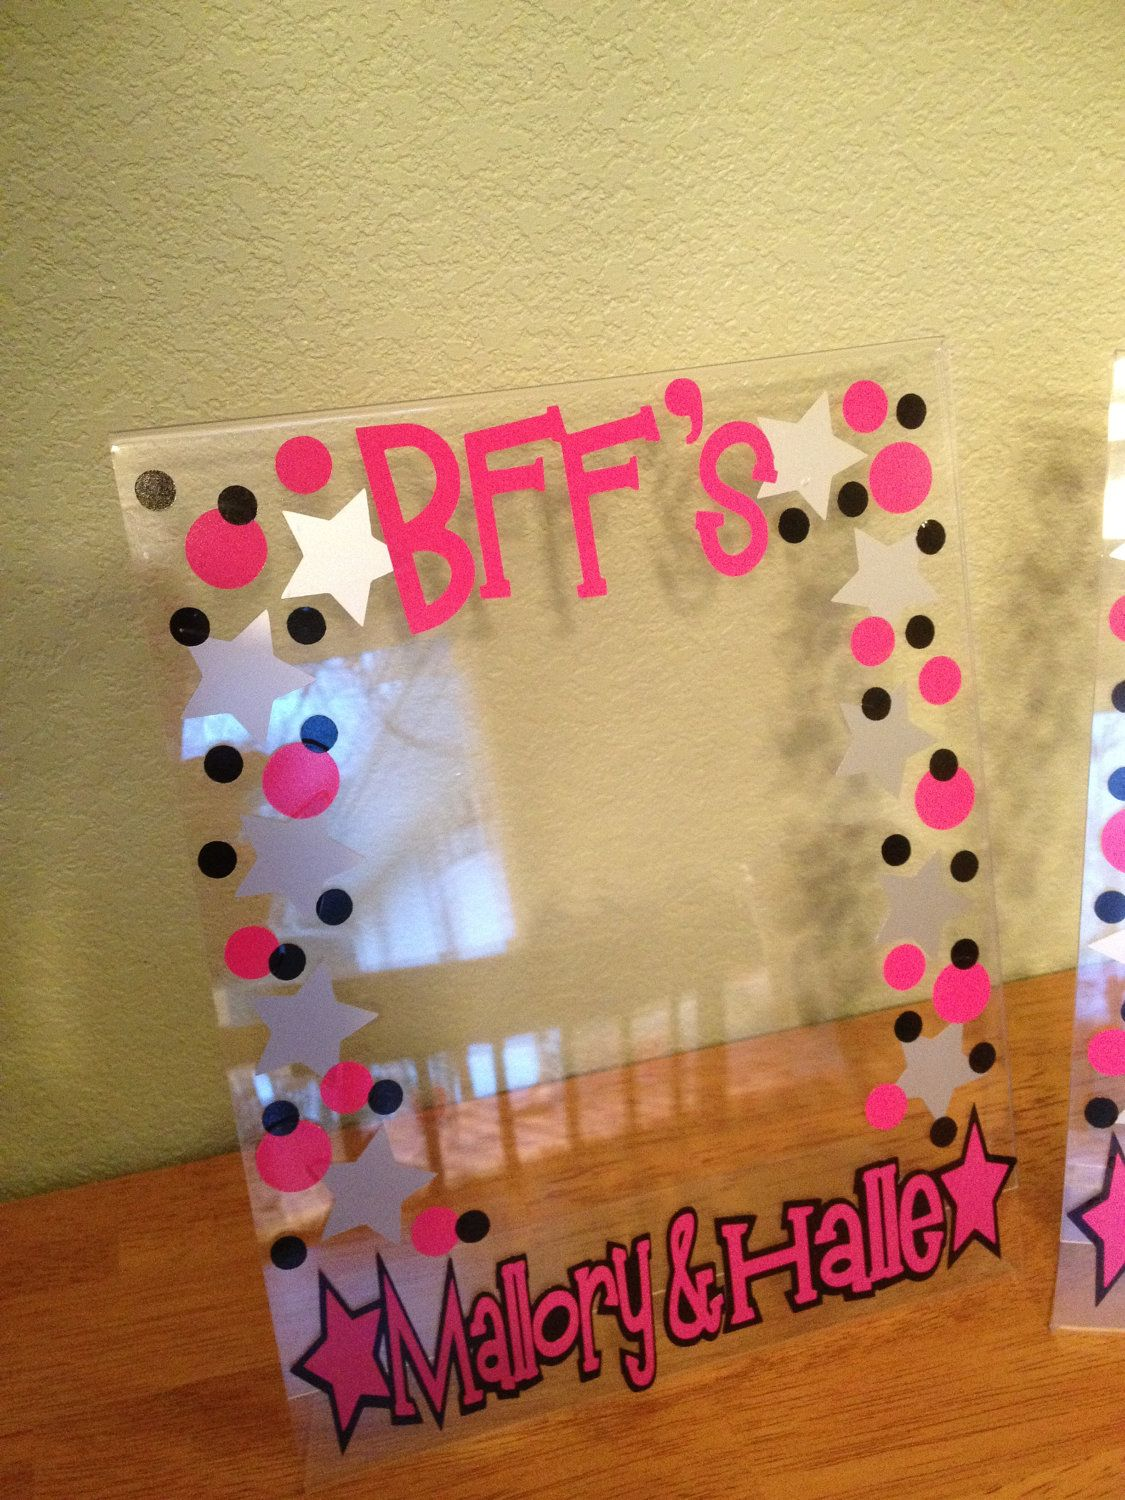 Pin By Teresa Miller On Vinyl Acrylic Picture Frames Vinyl Crafts Frame Crafts